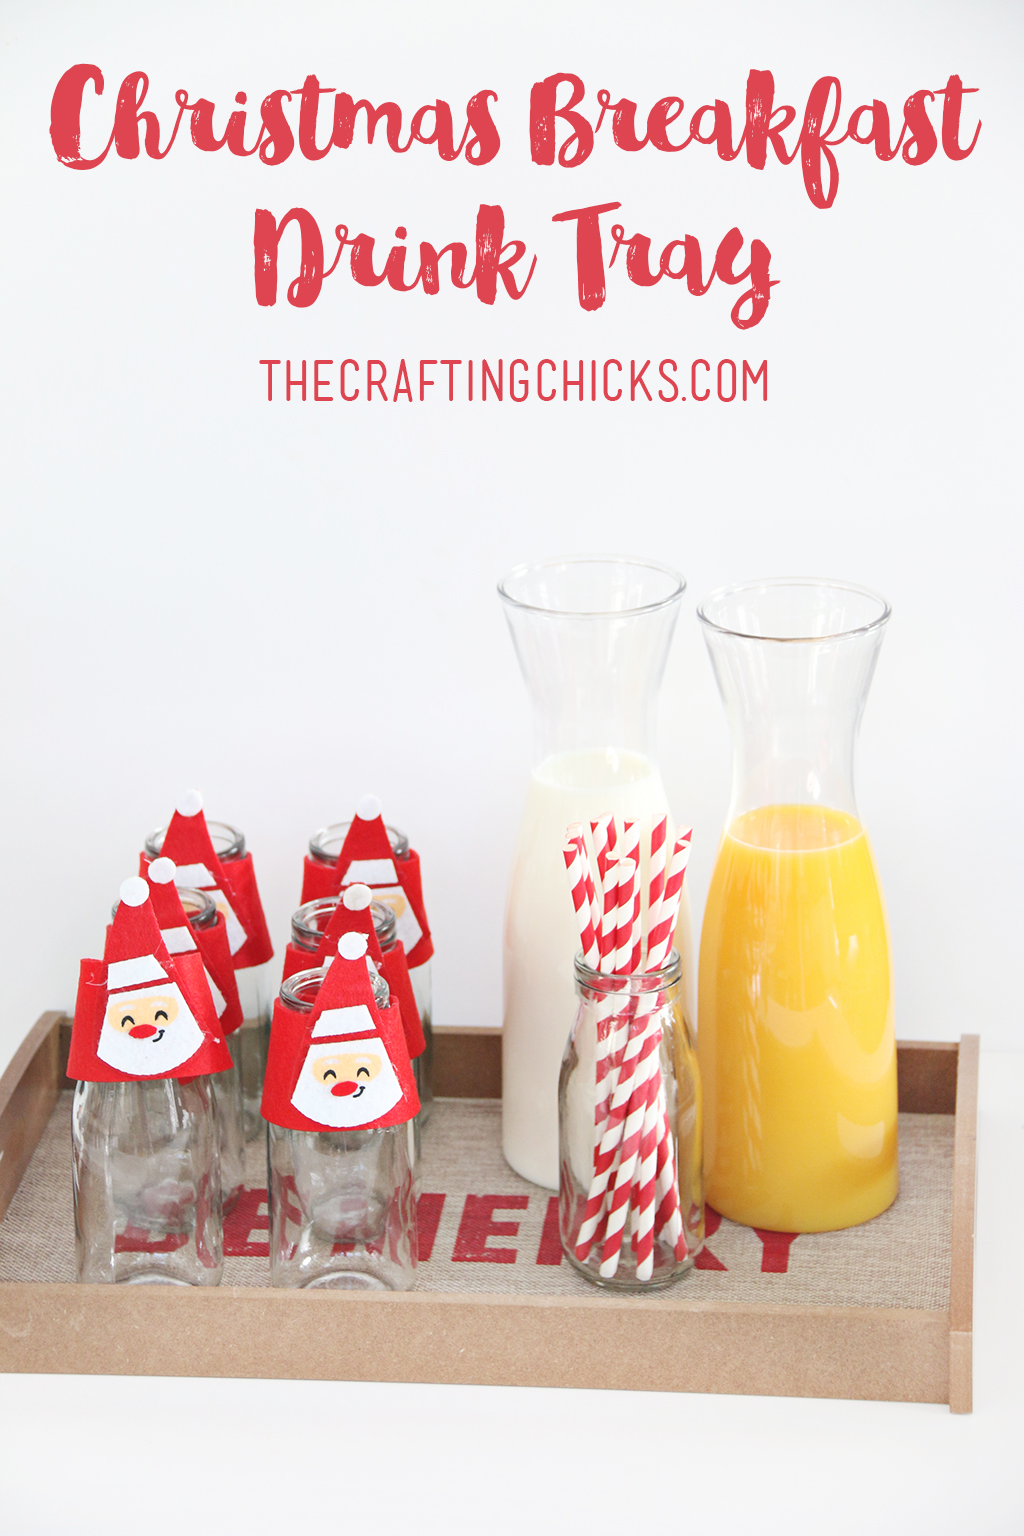 Christmas Breakfast Drink Tray for Your Christmas Morning Breakfast